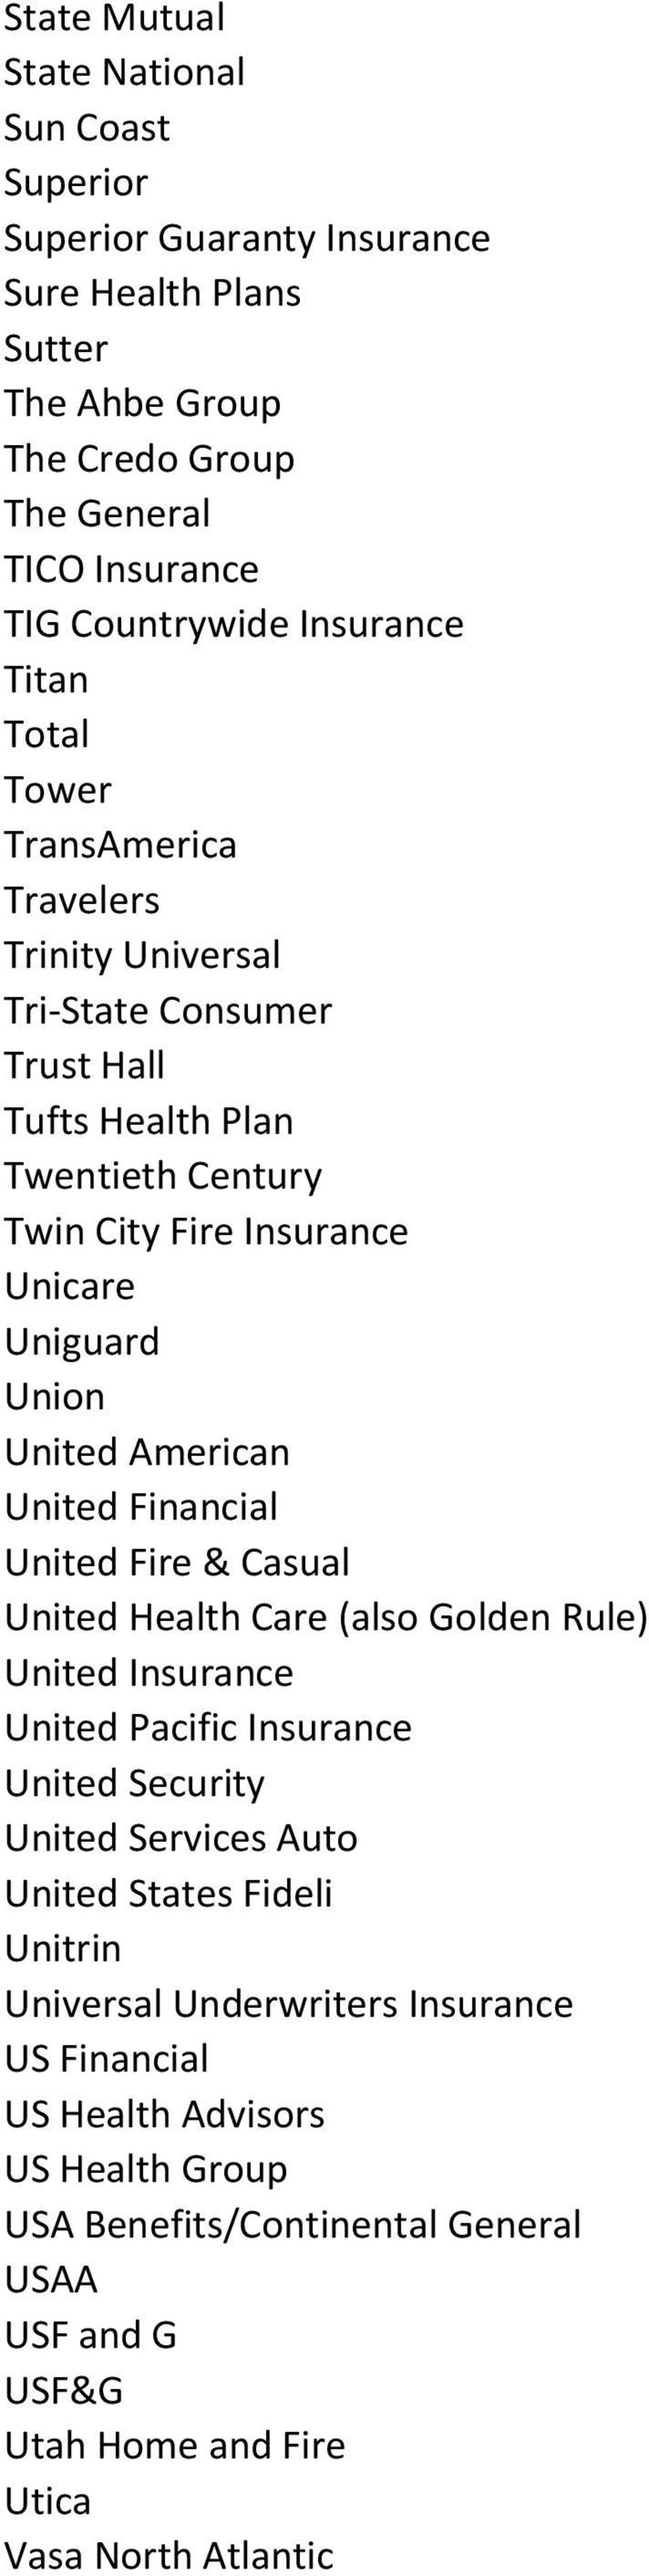 American United Financial United Fire & Casual United Health Care (also Golden Rule) United Insurance United Pacific Insurance United Security United Services Auto United States